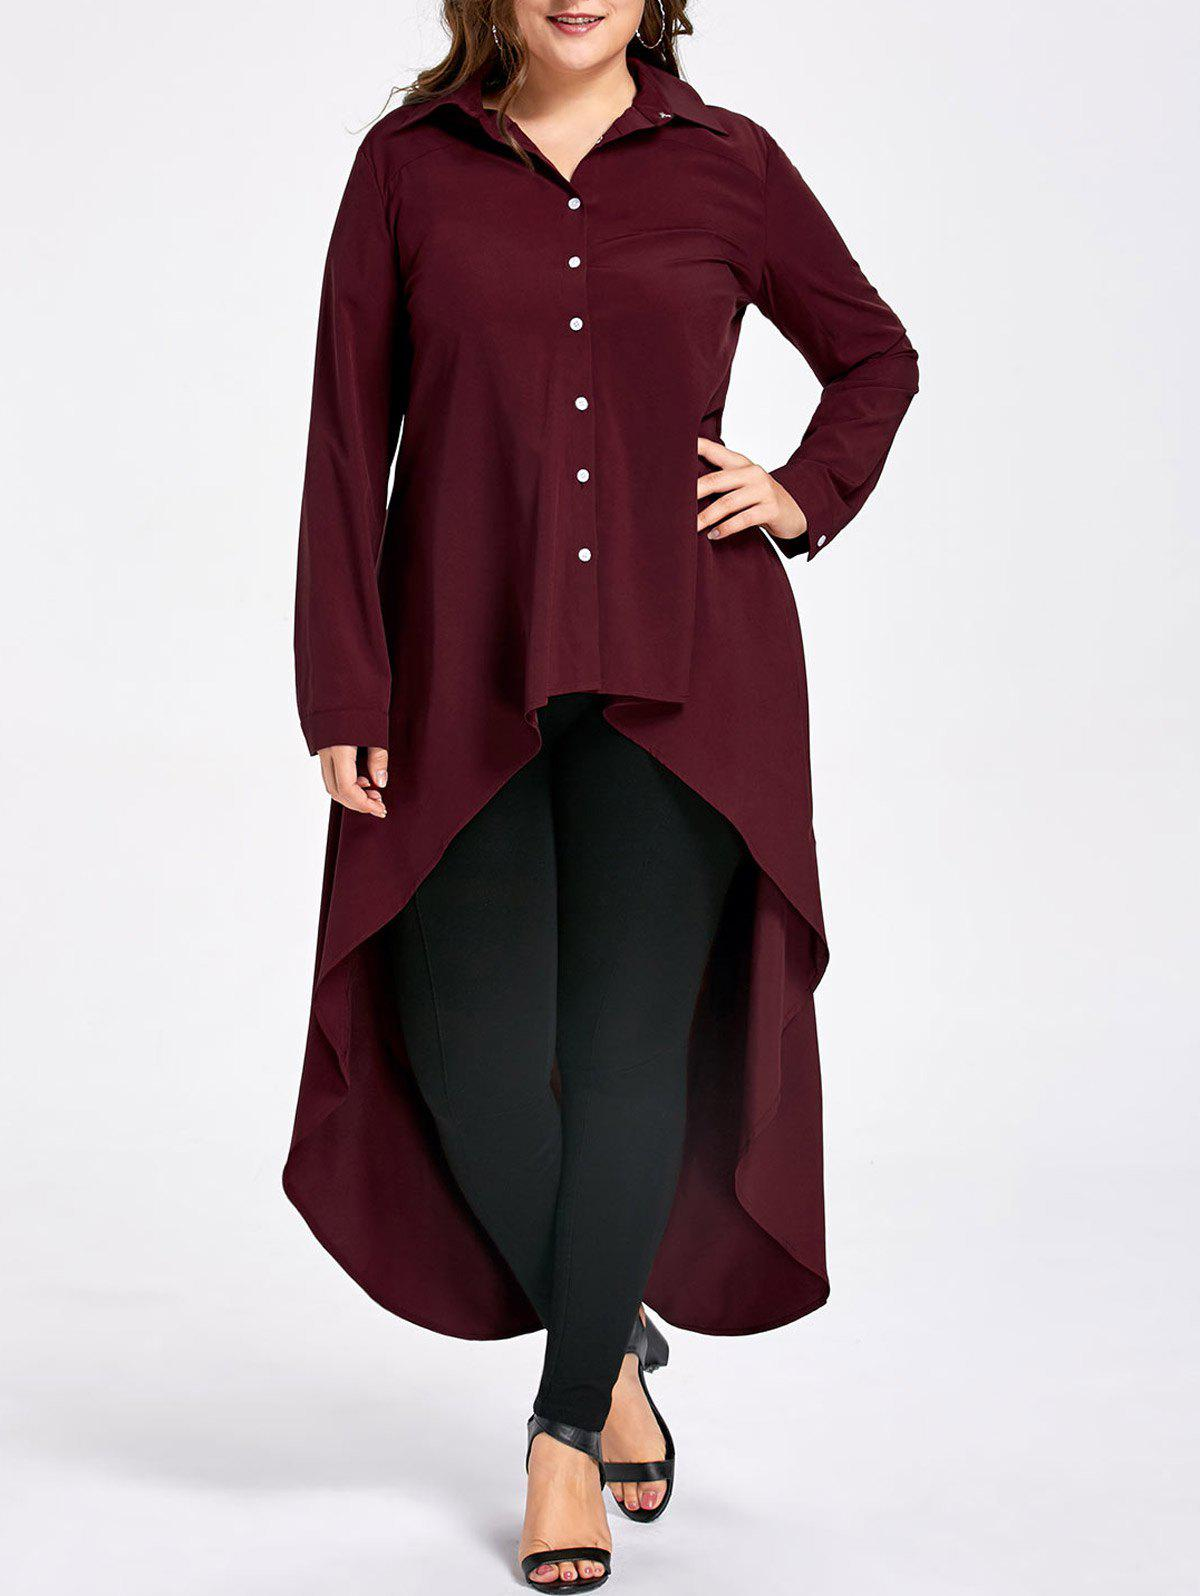 Plus Size High Low Hem Extra Long BlouseWOMEN<br><br>Size: 2XL; Color: DEEP RED; Material: Polyester,Spandex; Shirt Length: Long; Sleeve Length: Full; Collar: Shirt Collar; Style: Fashion; Season: Fall,Spring,Summer; Embellishment: Button; Pattern Type: Solid; Weight: 0.3600kg; Package Contents: 1 x Blouse;